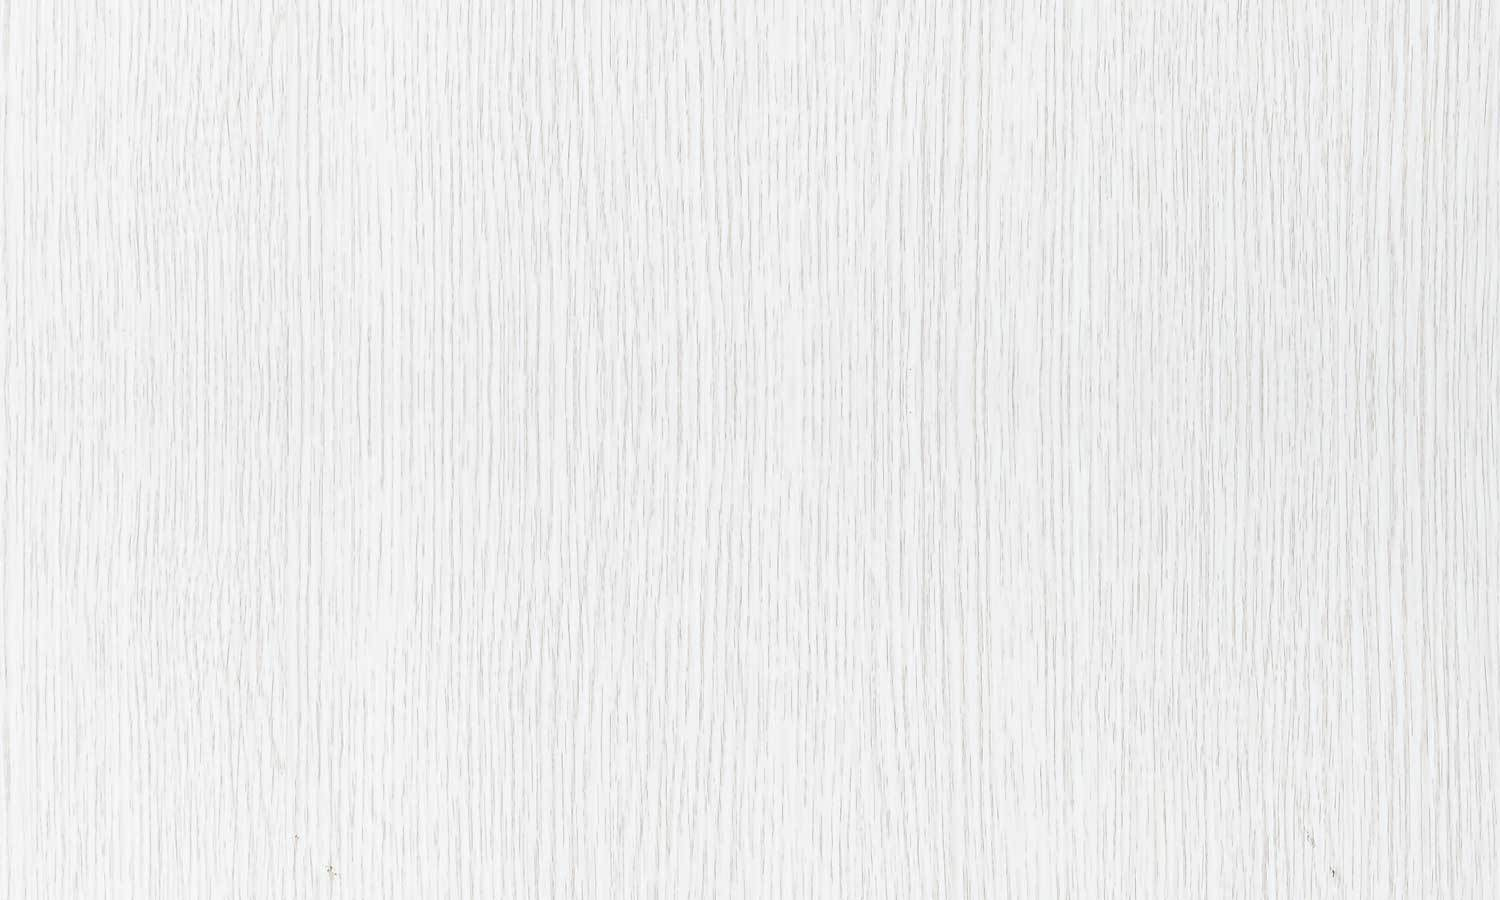 self-adhesive film for furniture - white wood PAT003